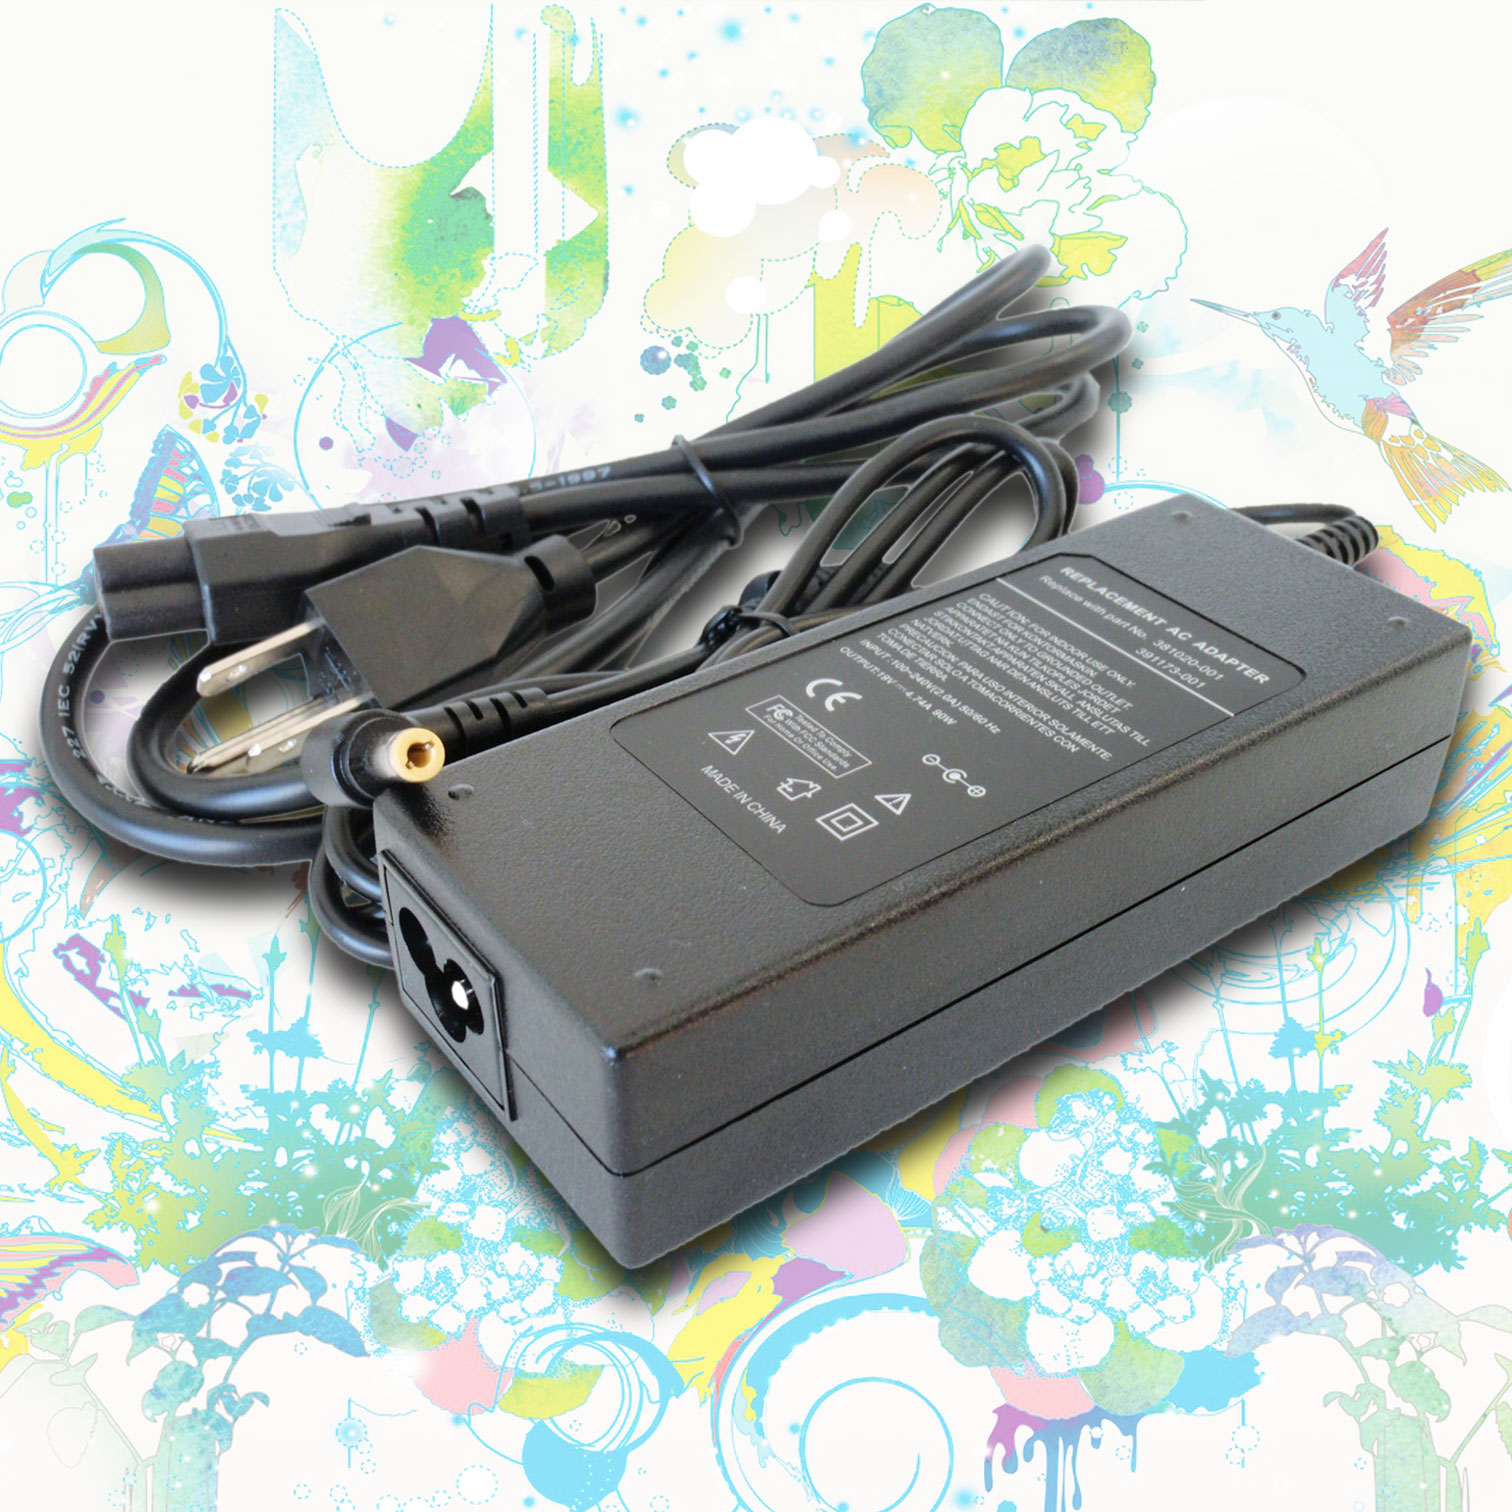 Power Charger Adapter Supply Cord for Toshiba Satellite L305-S5908 L305-S59512